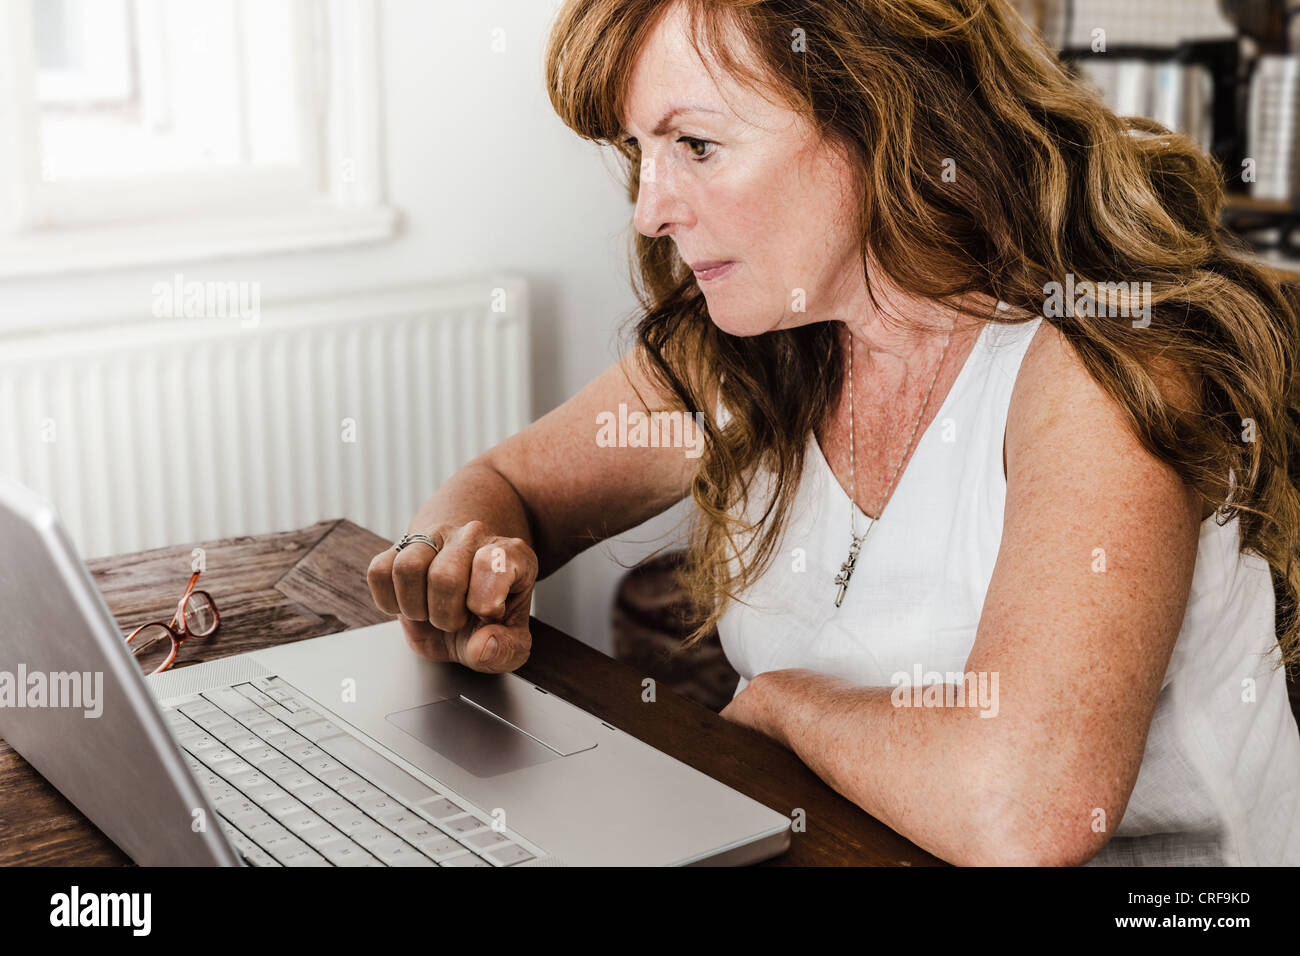 Older woman using laptop in kitchen - Stock Image